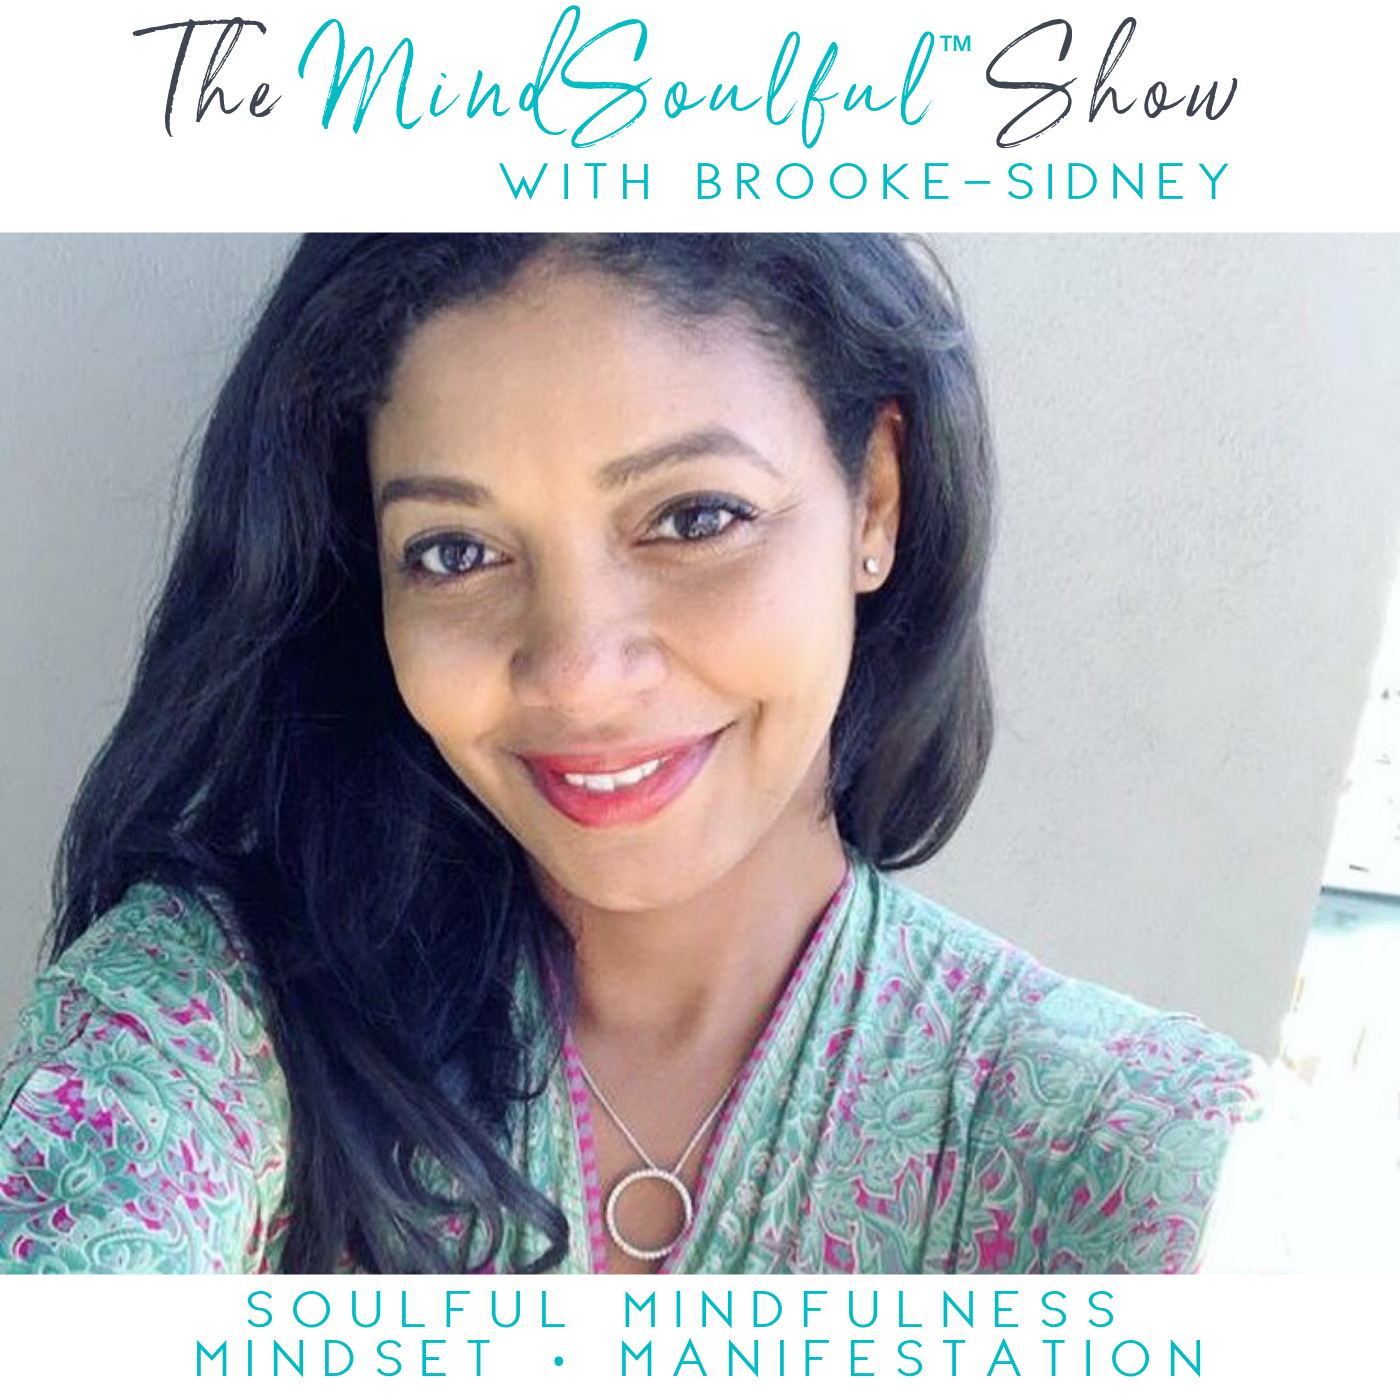 MindSoulful Show with Brooke-Sidney Feb 2019 v13.png